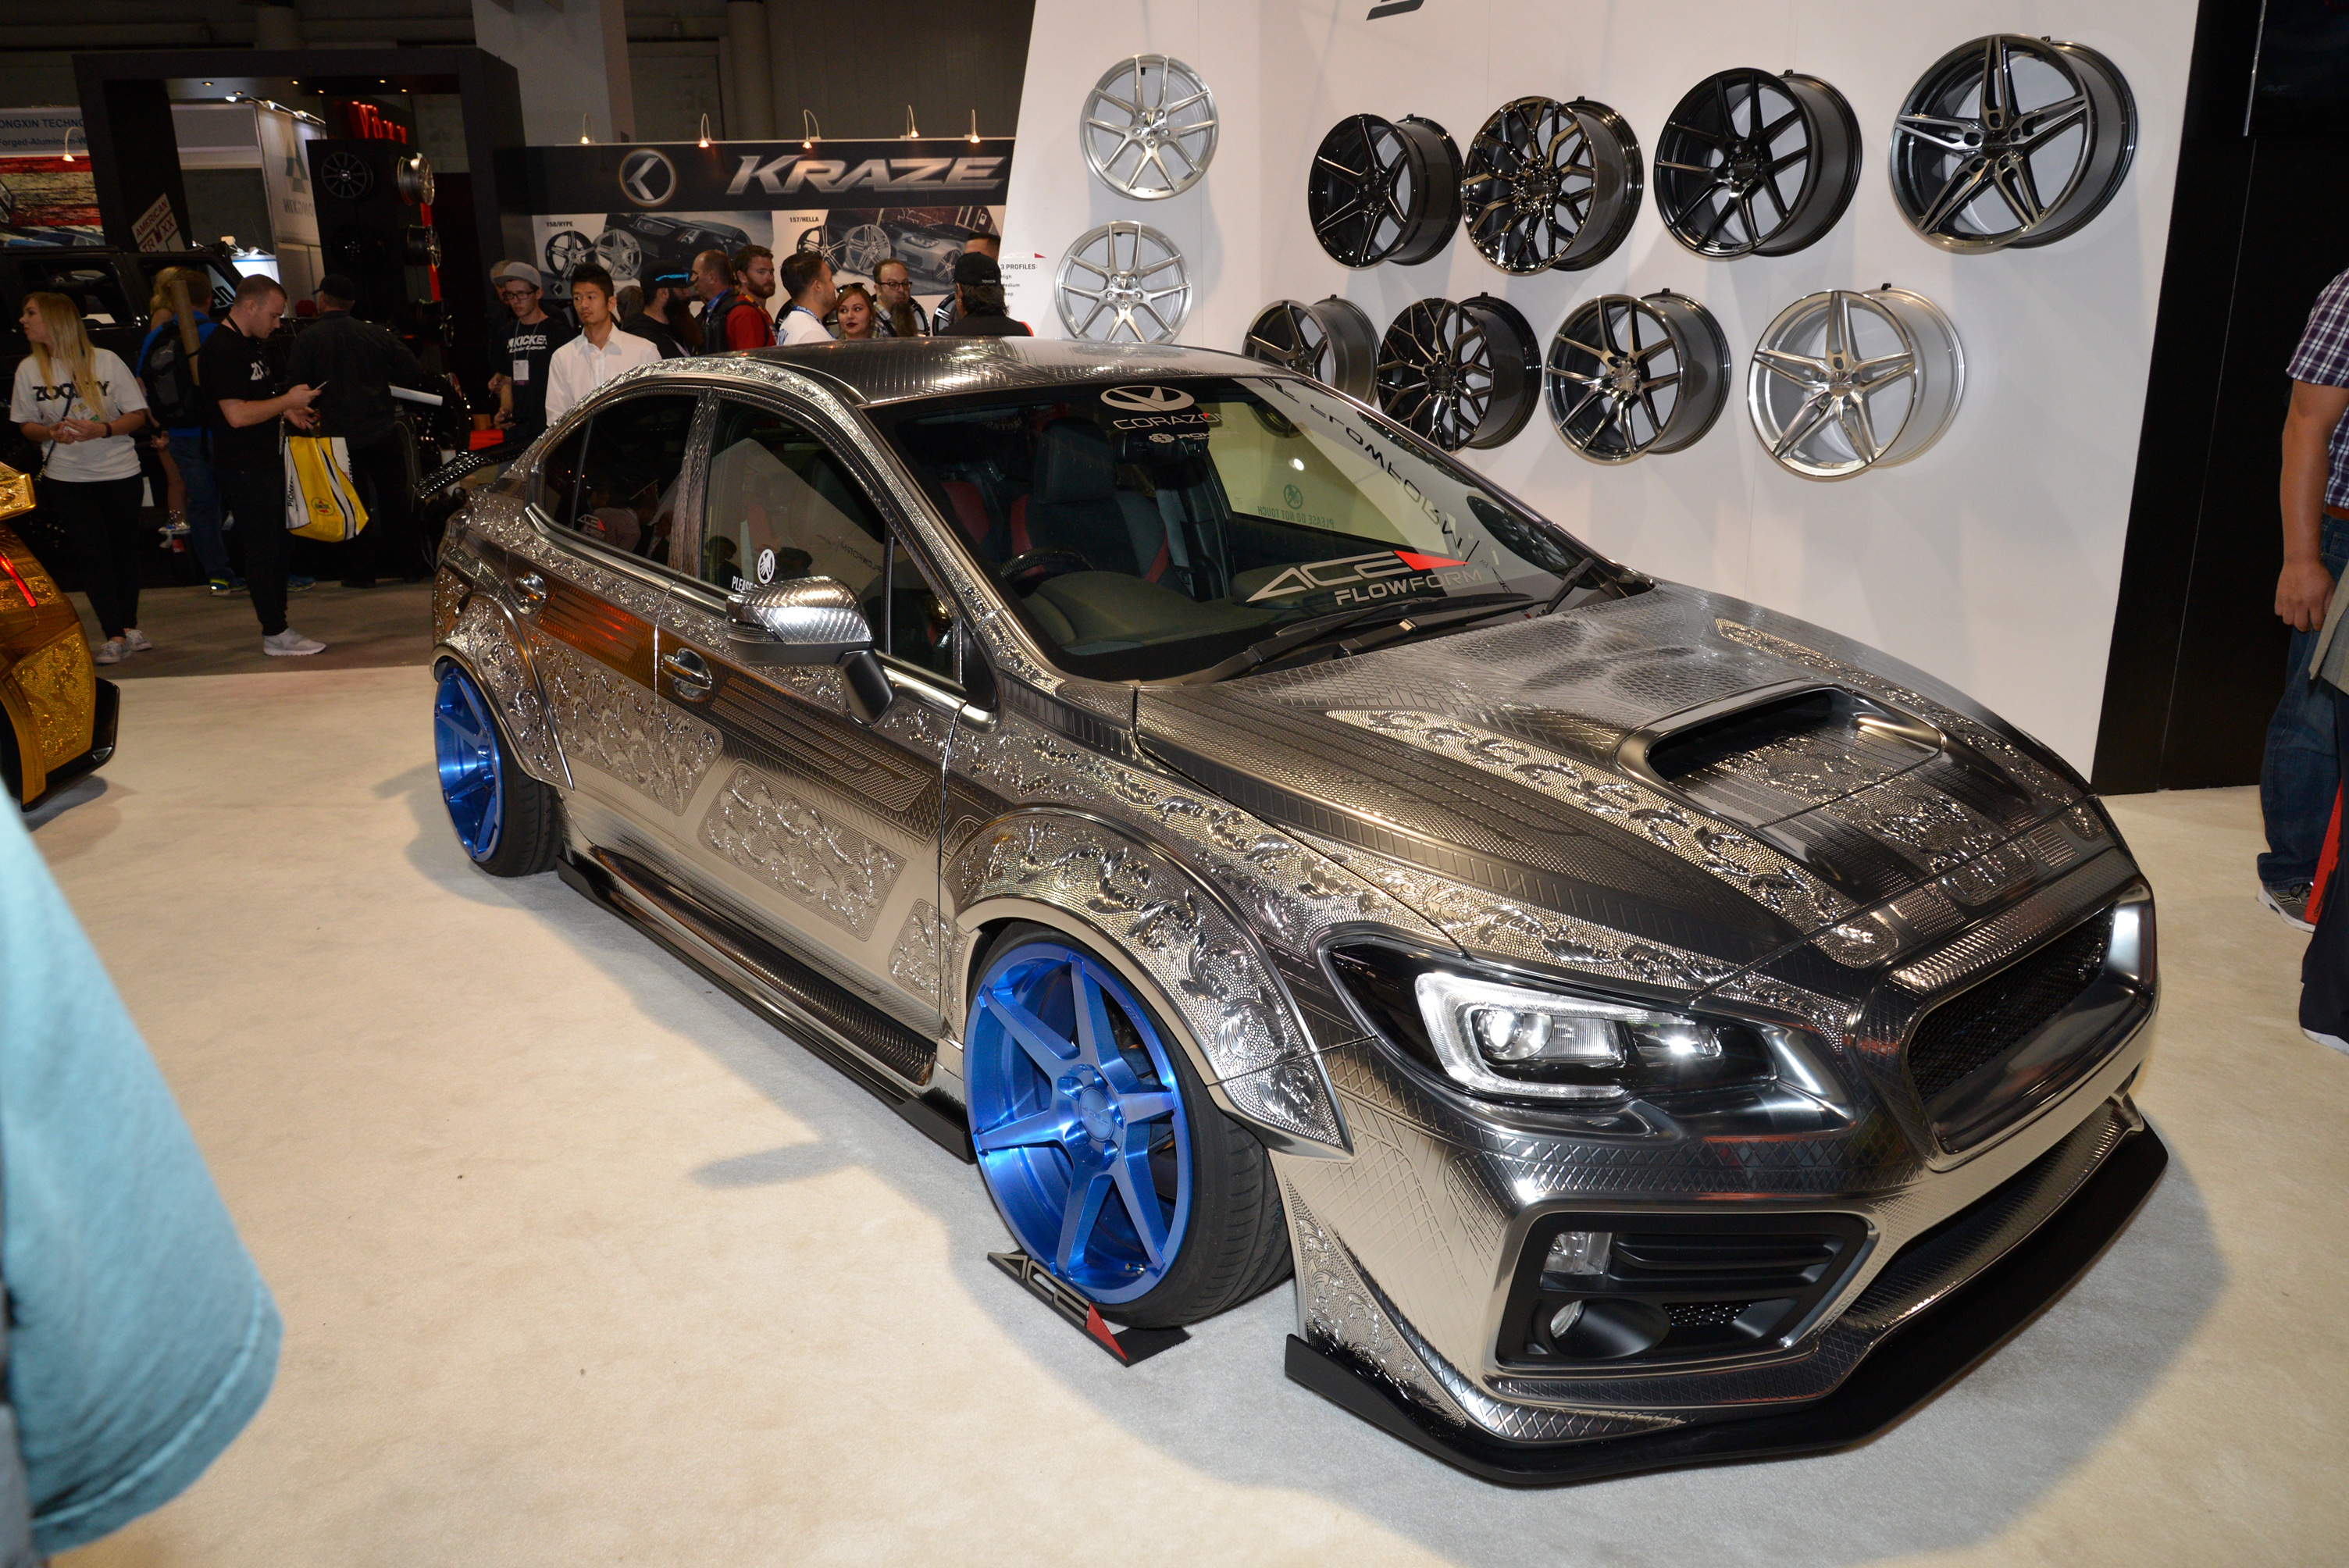 Engraved Subaru Wrx Sti With Widebody Kit Is Pure Art At 2016 Sema